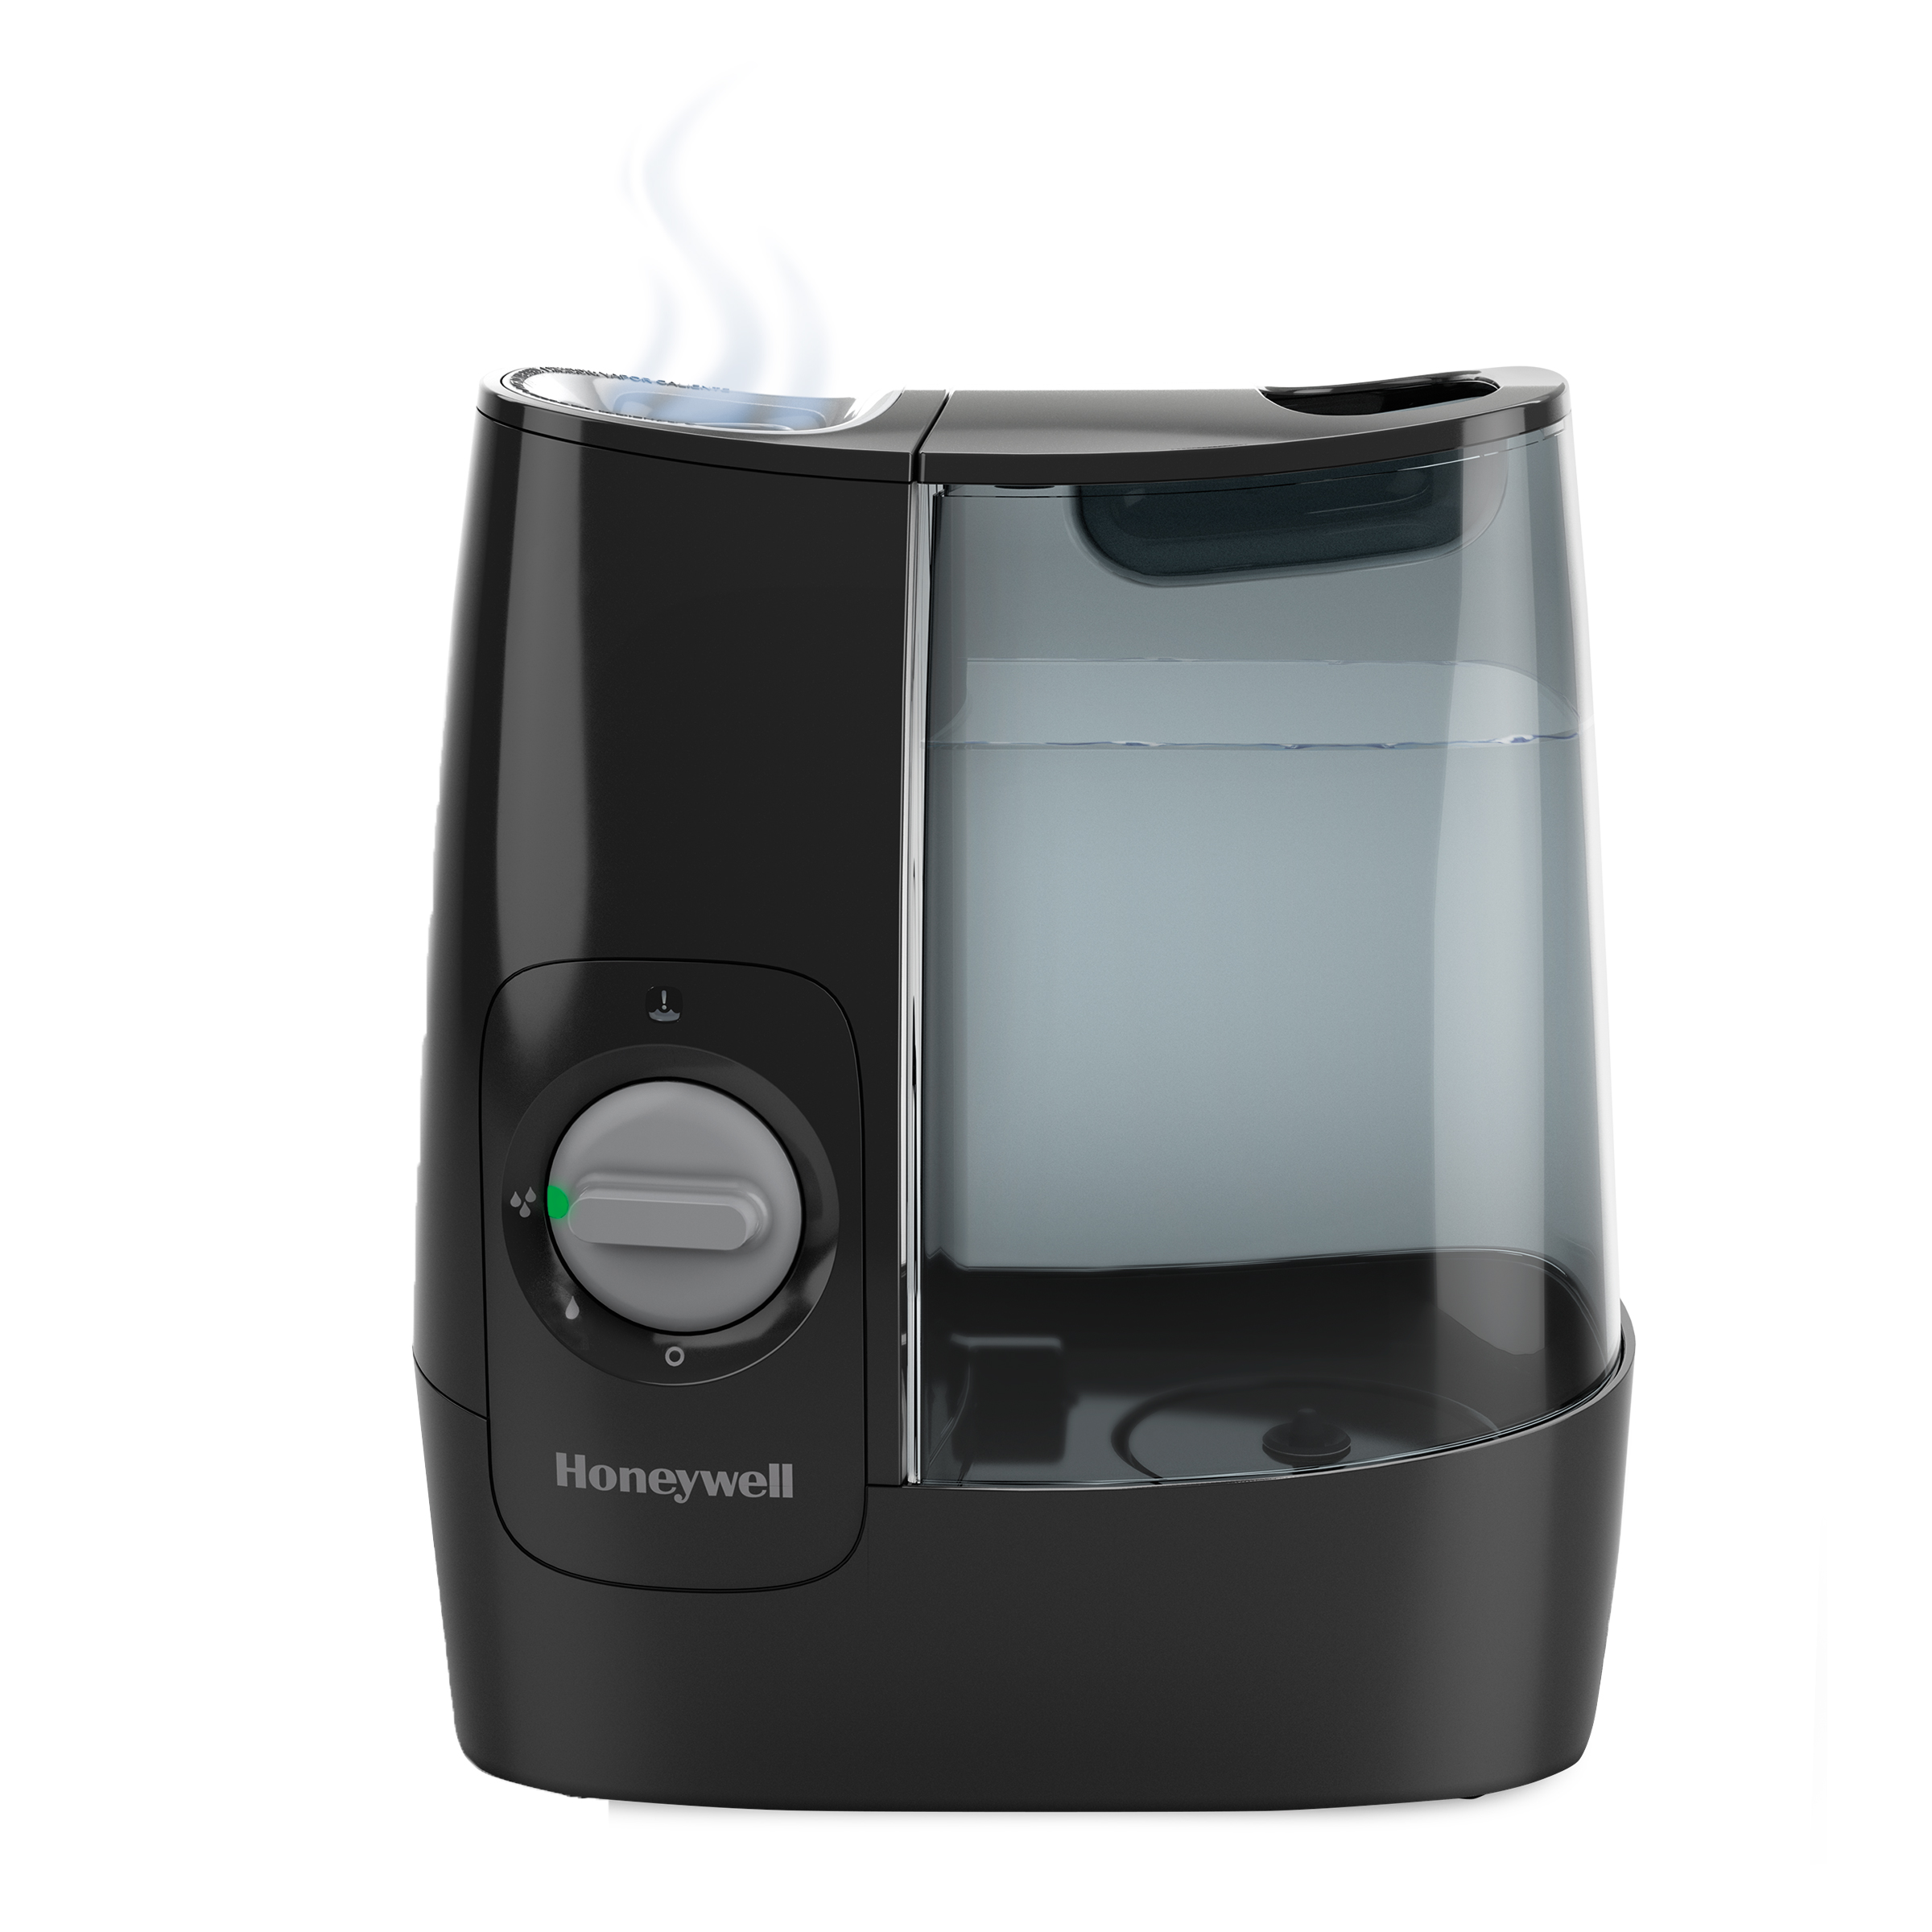 Honeywell Filter Free Warm Mist Humidifier HWM845BWM, Black